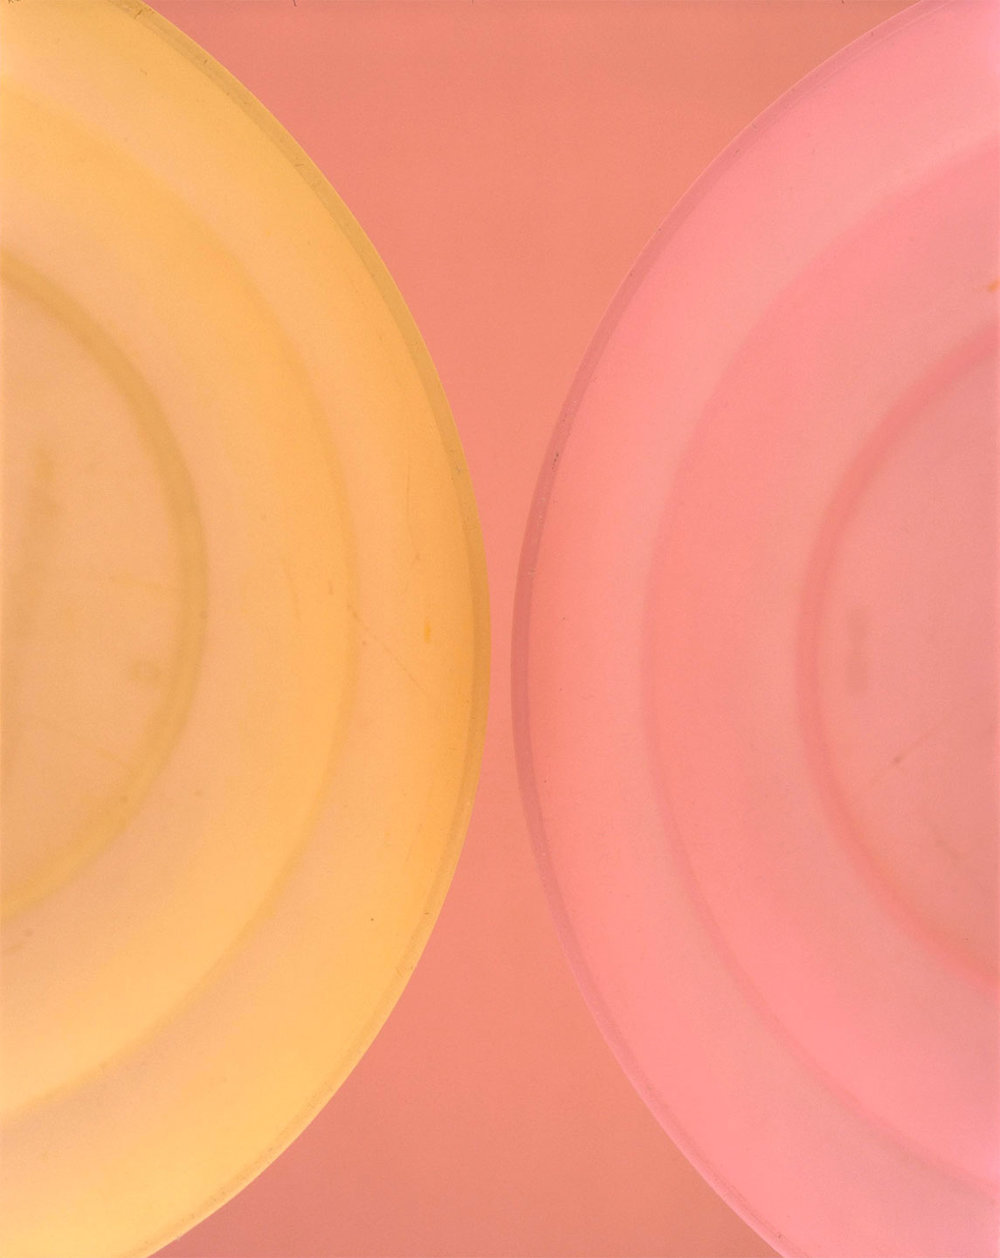 AG_Artist_RichardCaldiottTupperware_7.jpg